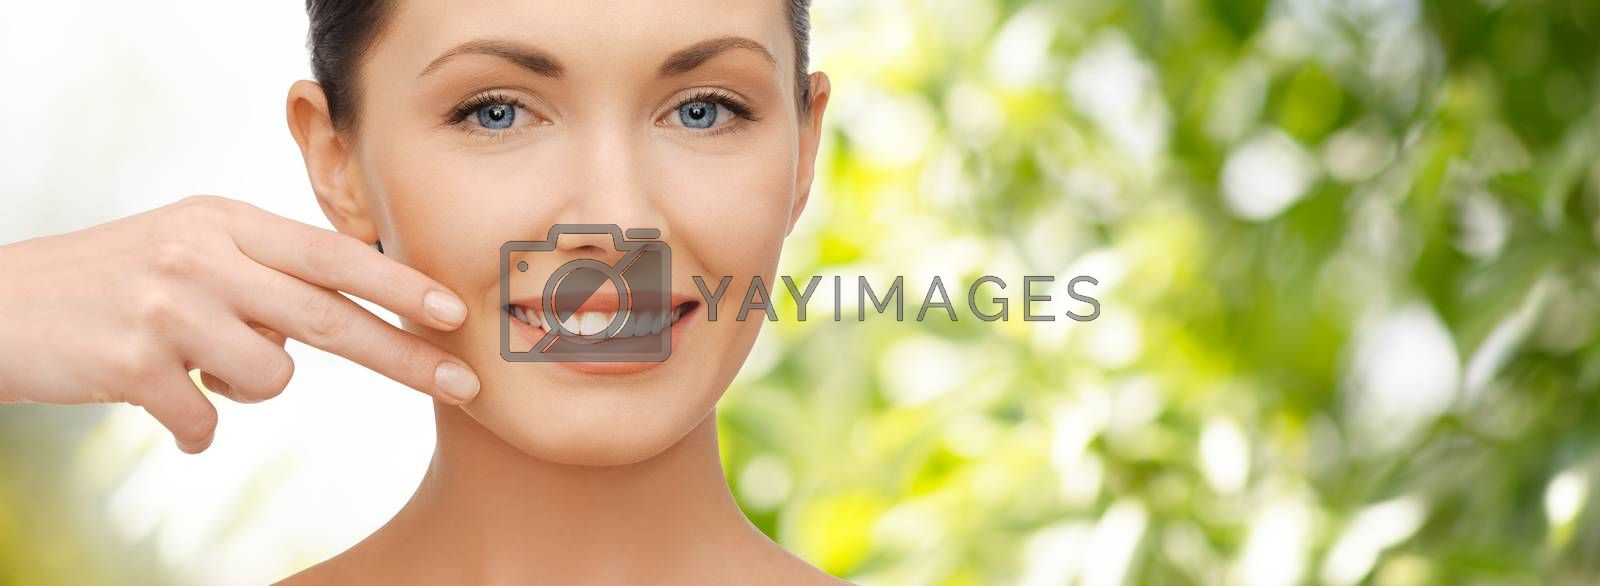 healthcare, people and beauty concept - beautiful woman touching her face skin over green natural background